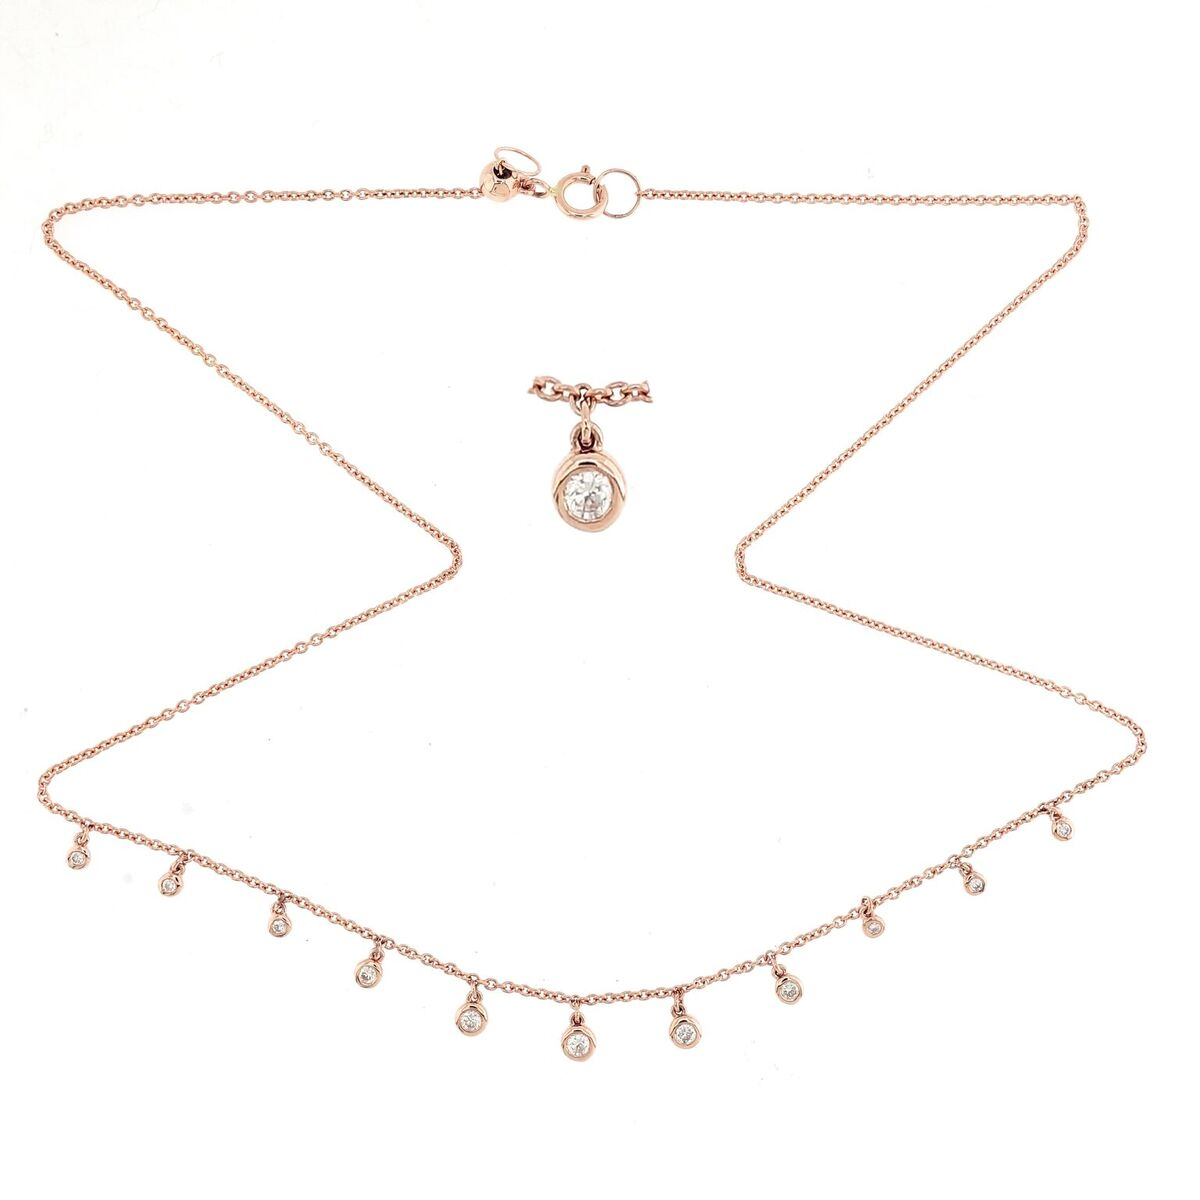 Dangeling Chocker Diamond Necklace